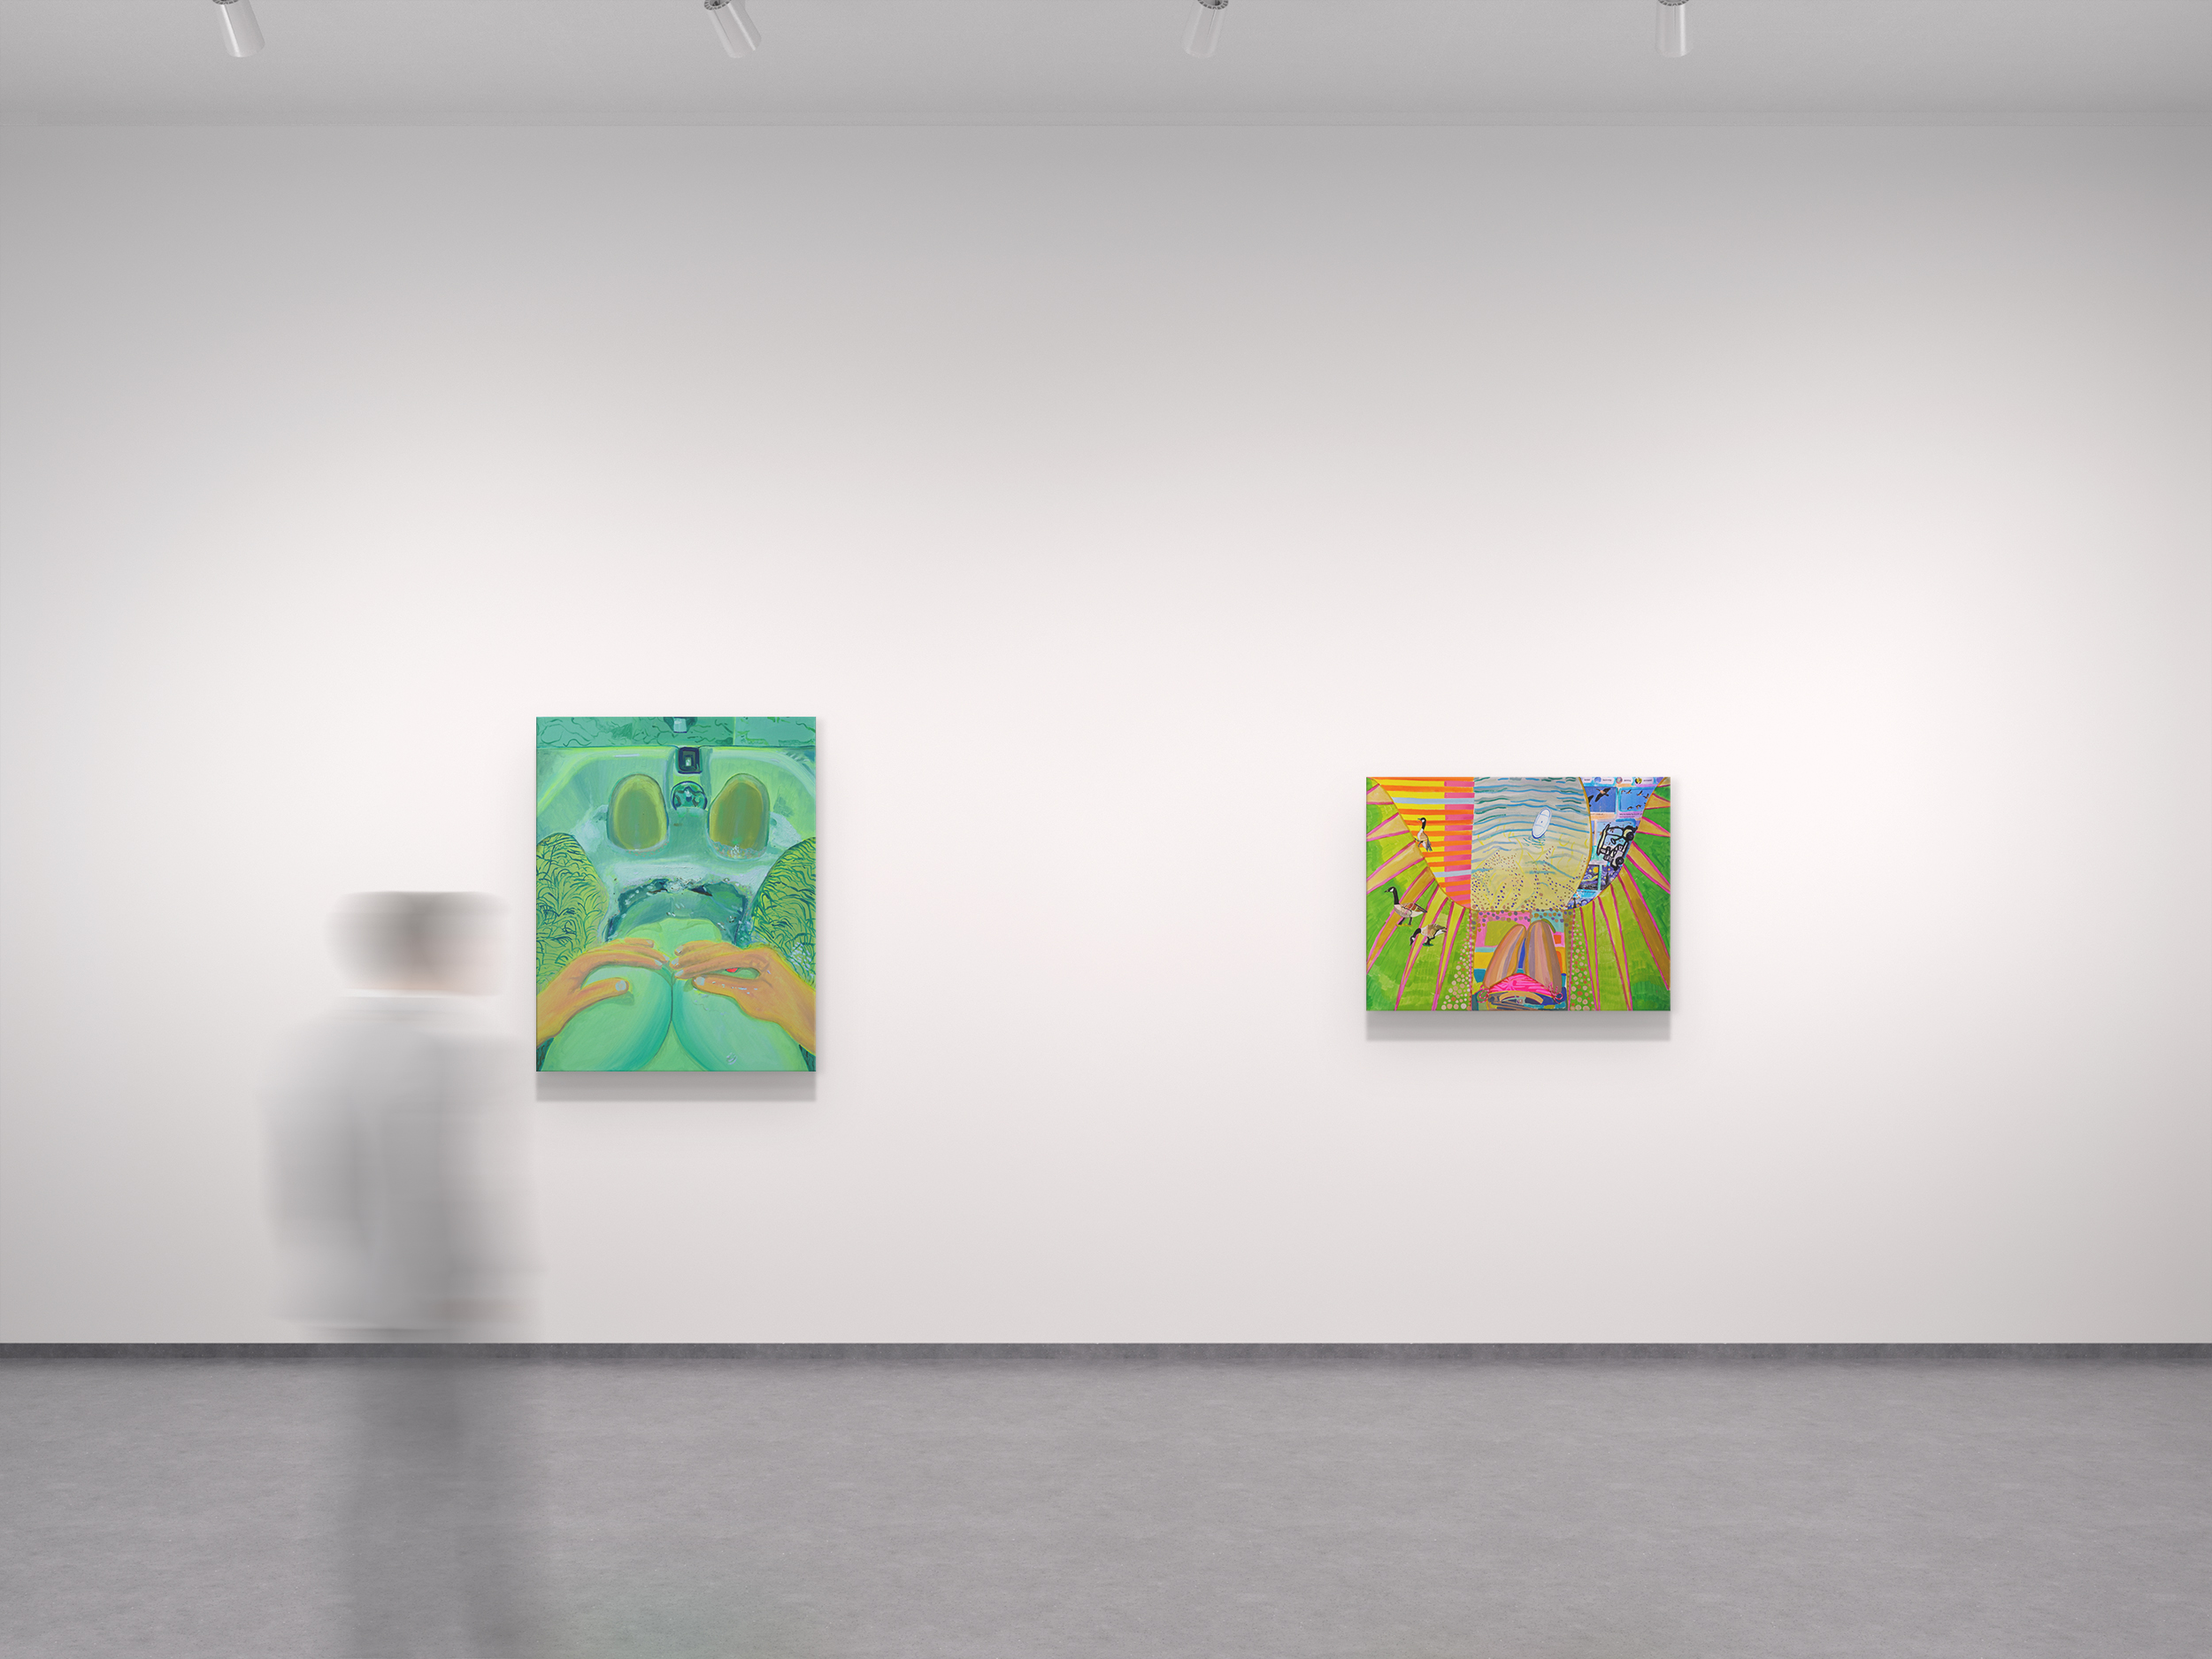 6_Madeline-Bohrer Gallery_frontal_01_2500x1875px